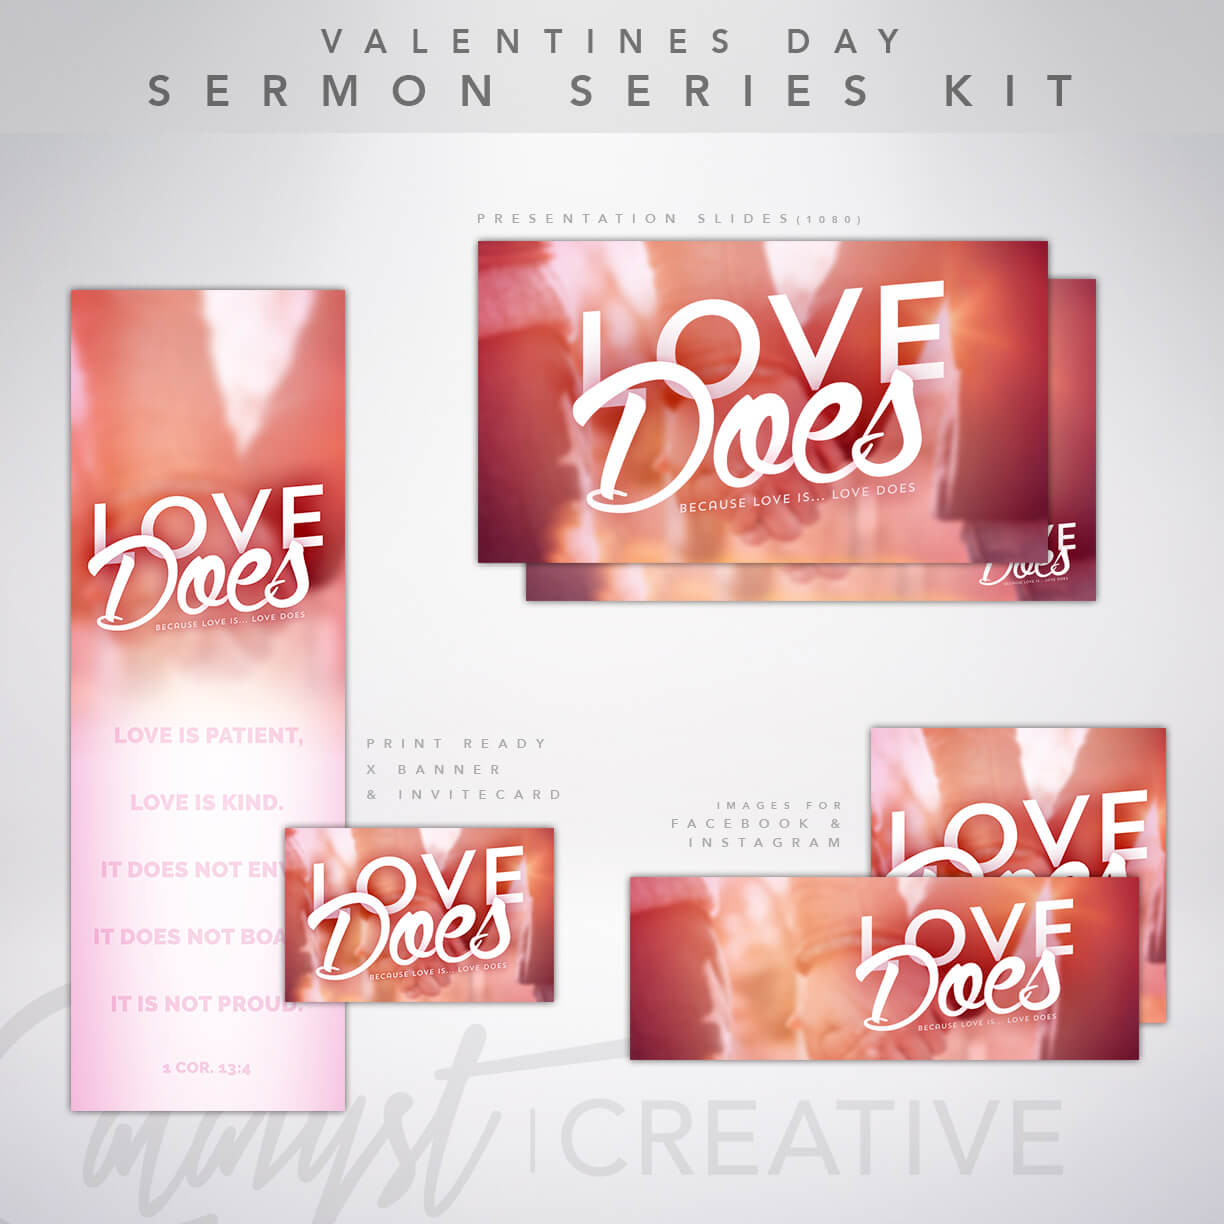 Valentines Day Sermon Series Kit